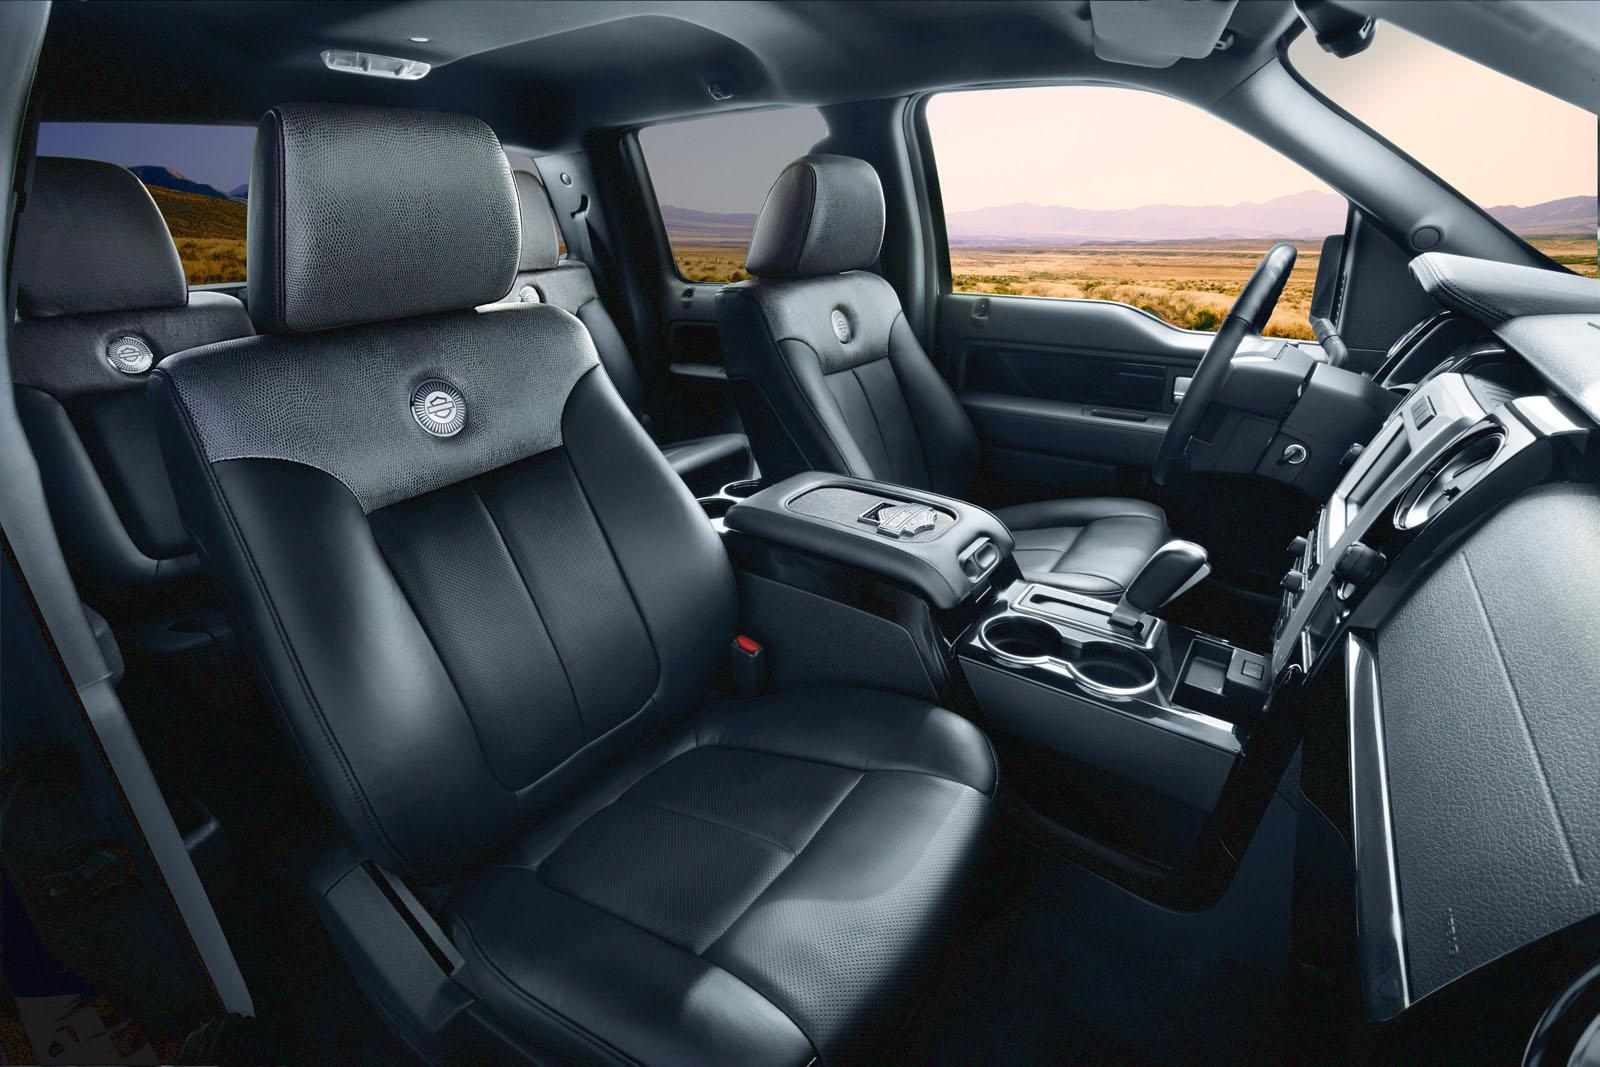 2012 Ford F-150 Harley Davidson Edition - Picture 57354